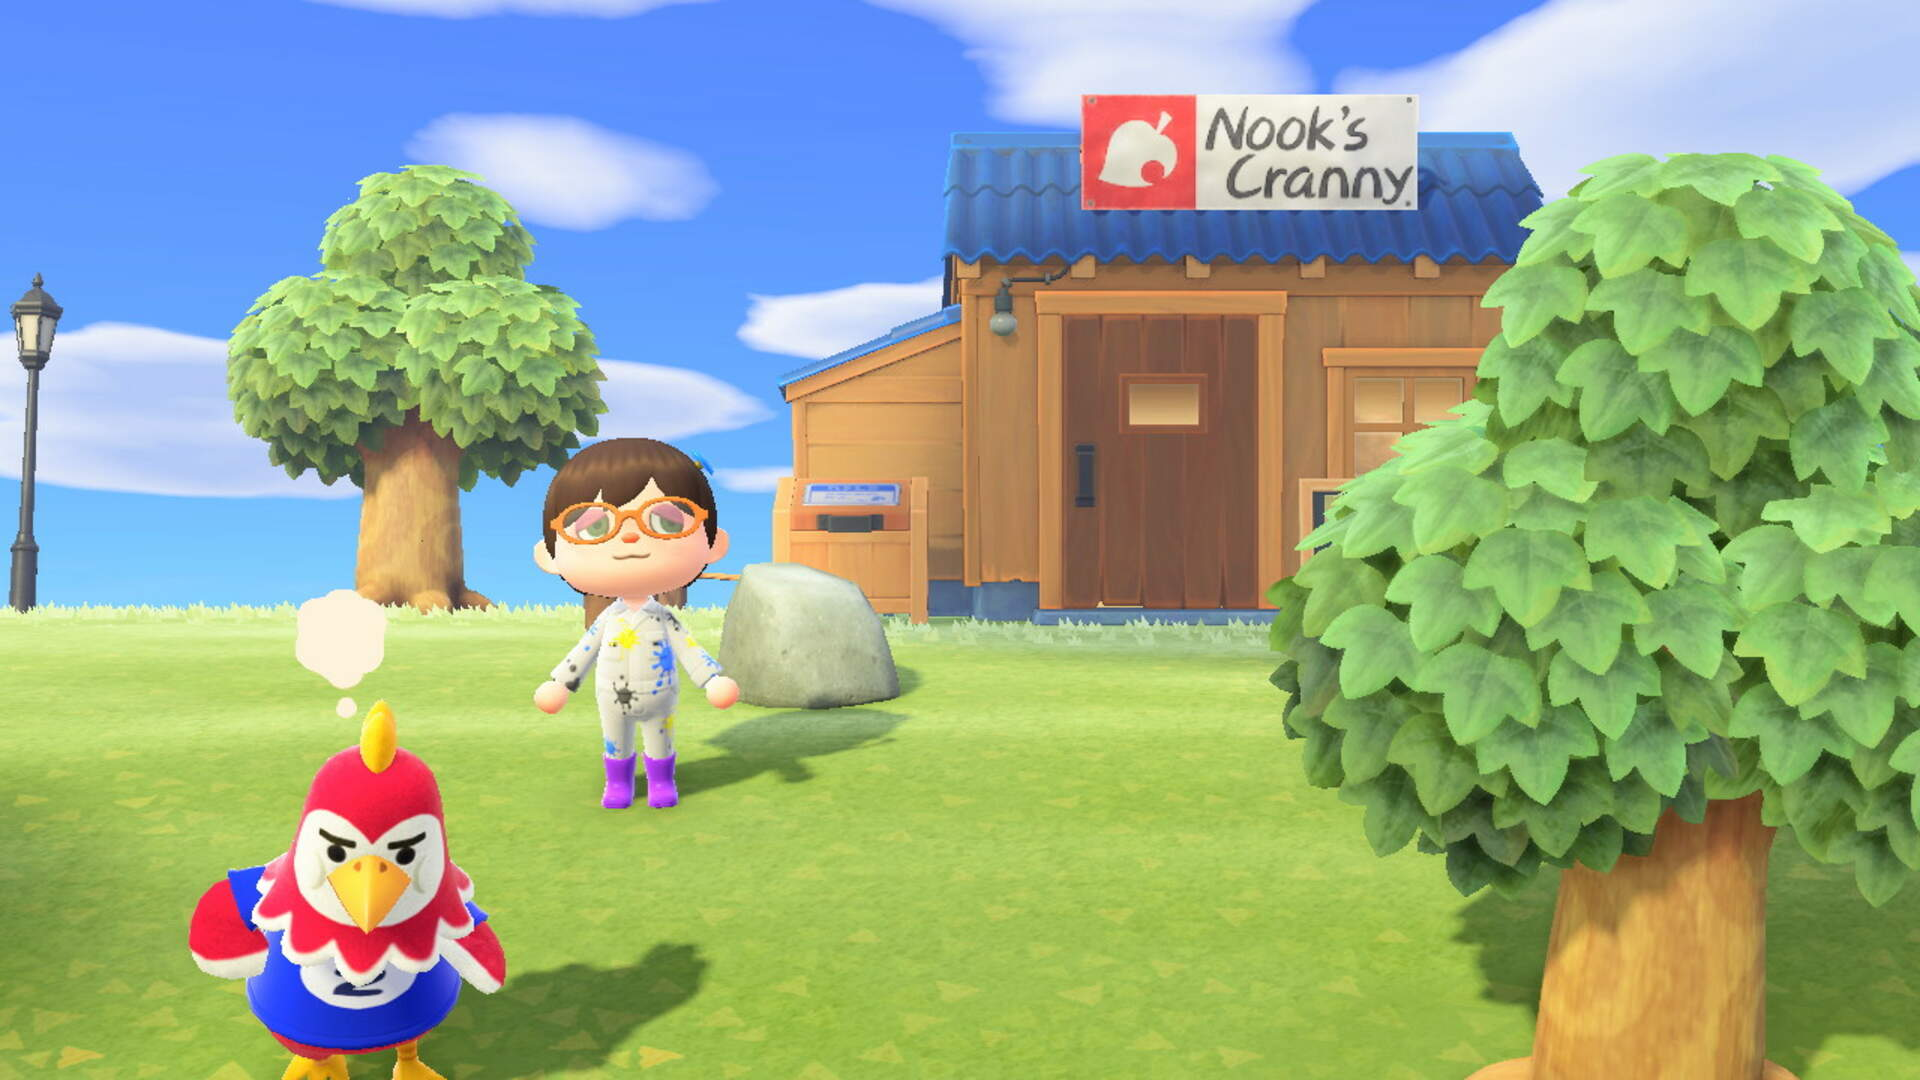 Animal Crossing New Horizons: How to Build and Unlock Nook's Cranny